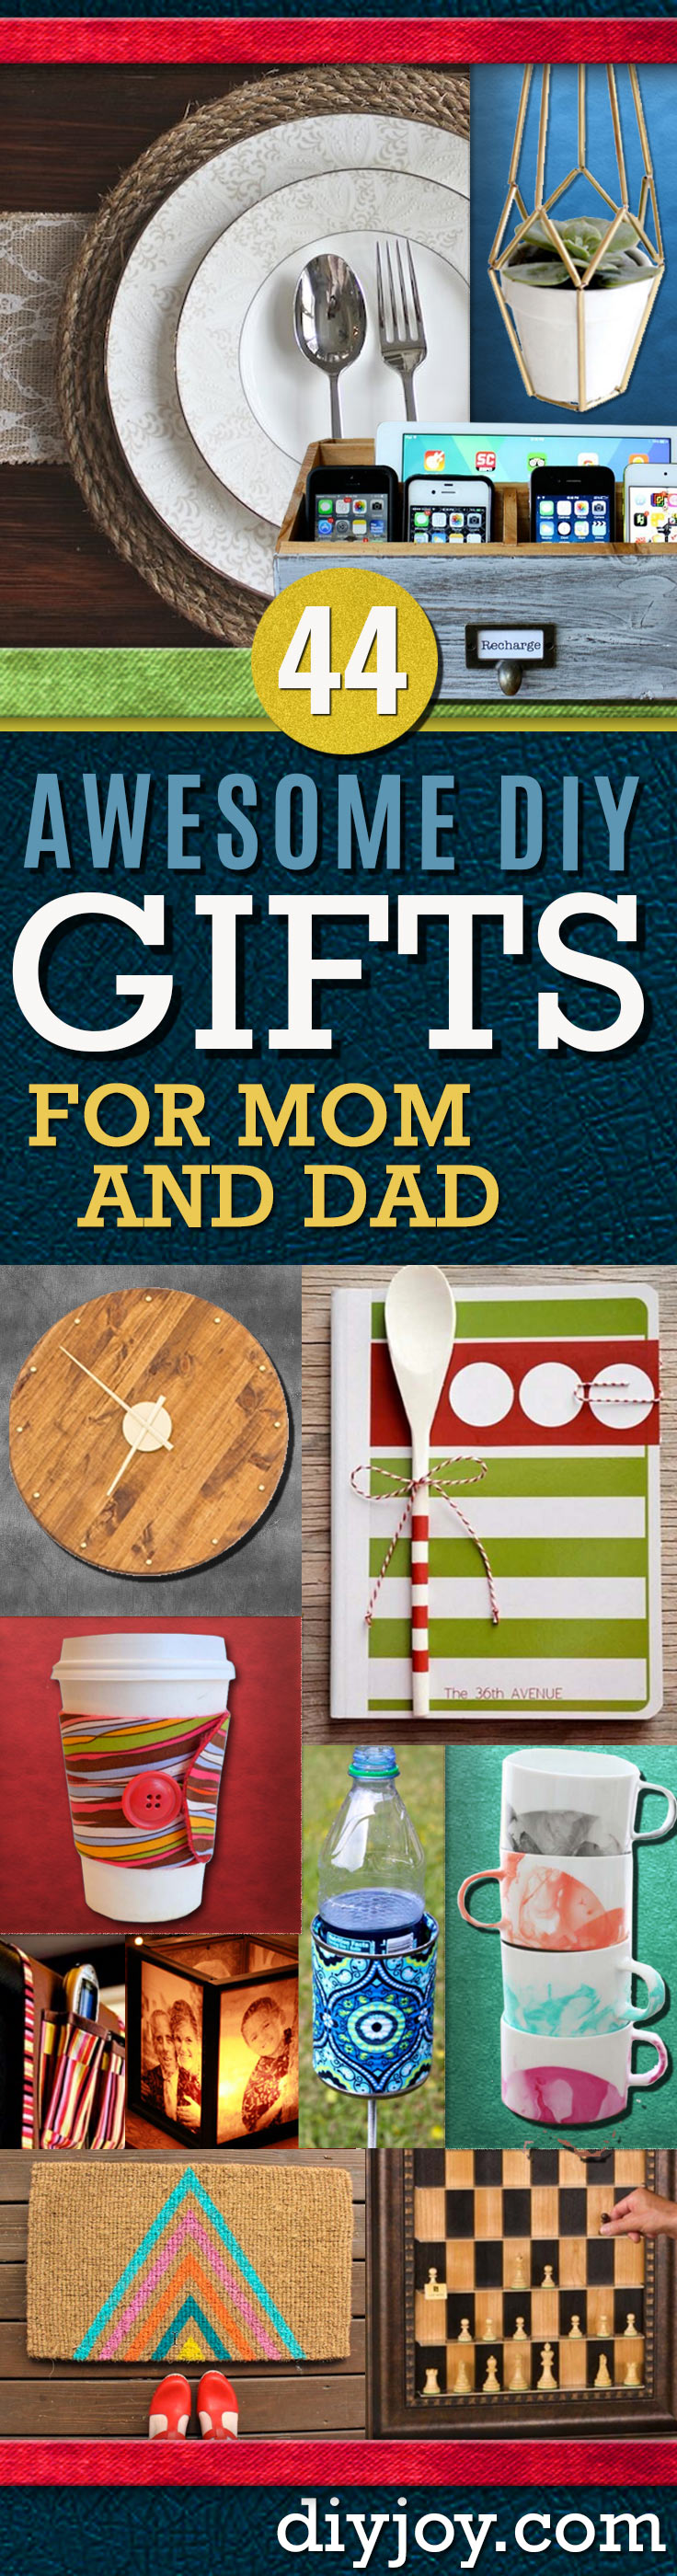 diy gifts for mom and dad homemade christmas gift ideas for your parents cool - Best Christmas Present